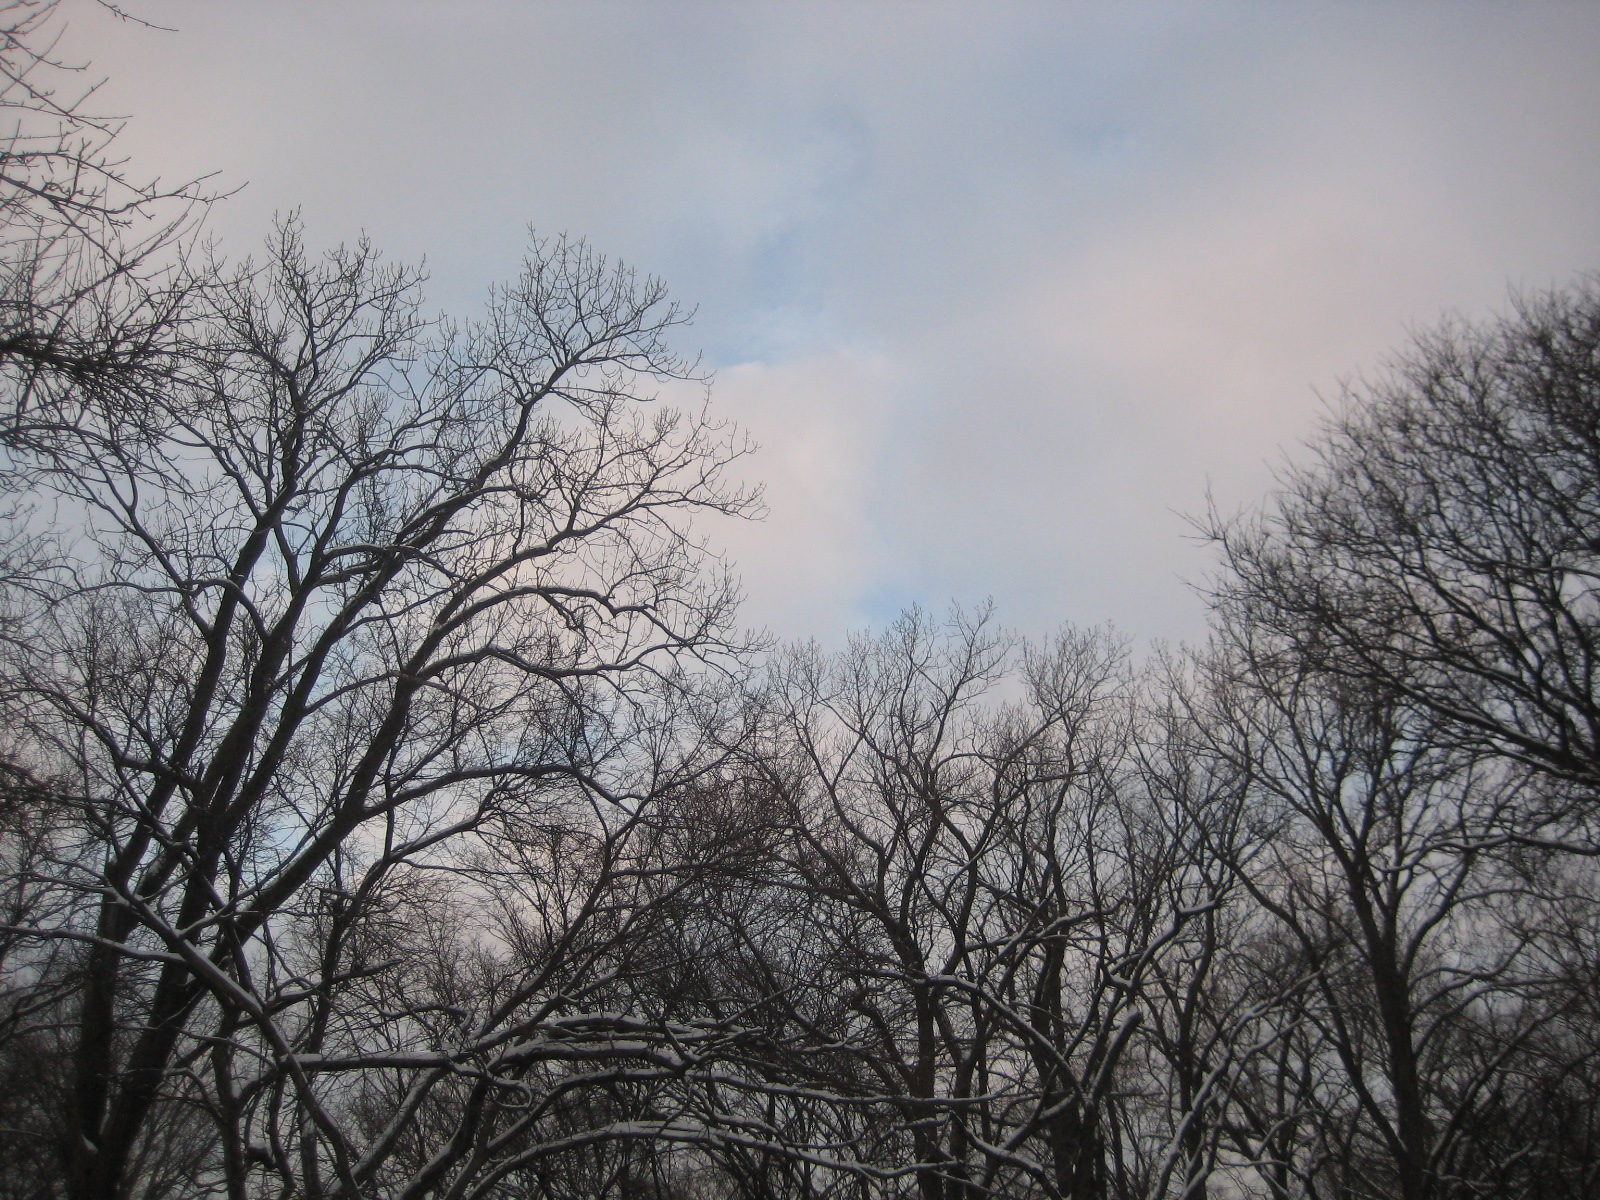 Sky in winter, #3